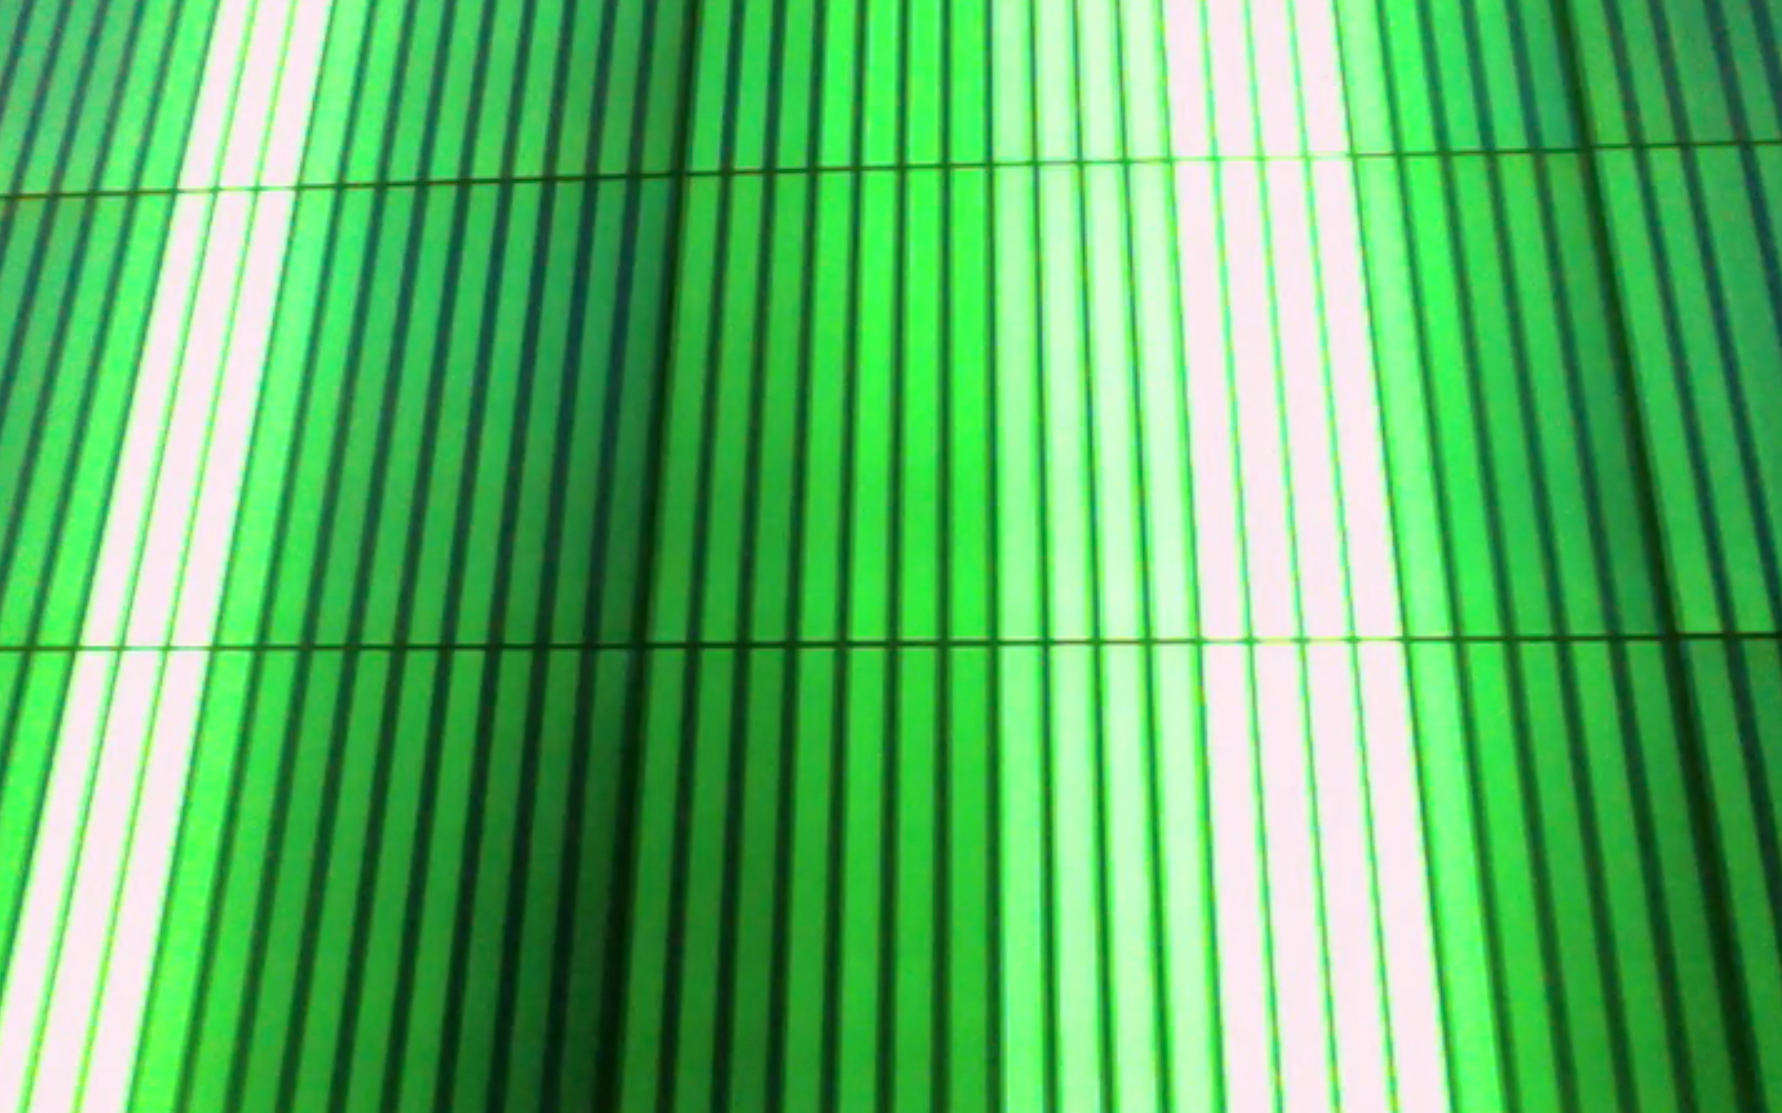 - My Abstract Visuals projected on a Led Wall c/o Swiss Corner (2012)